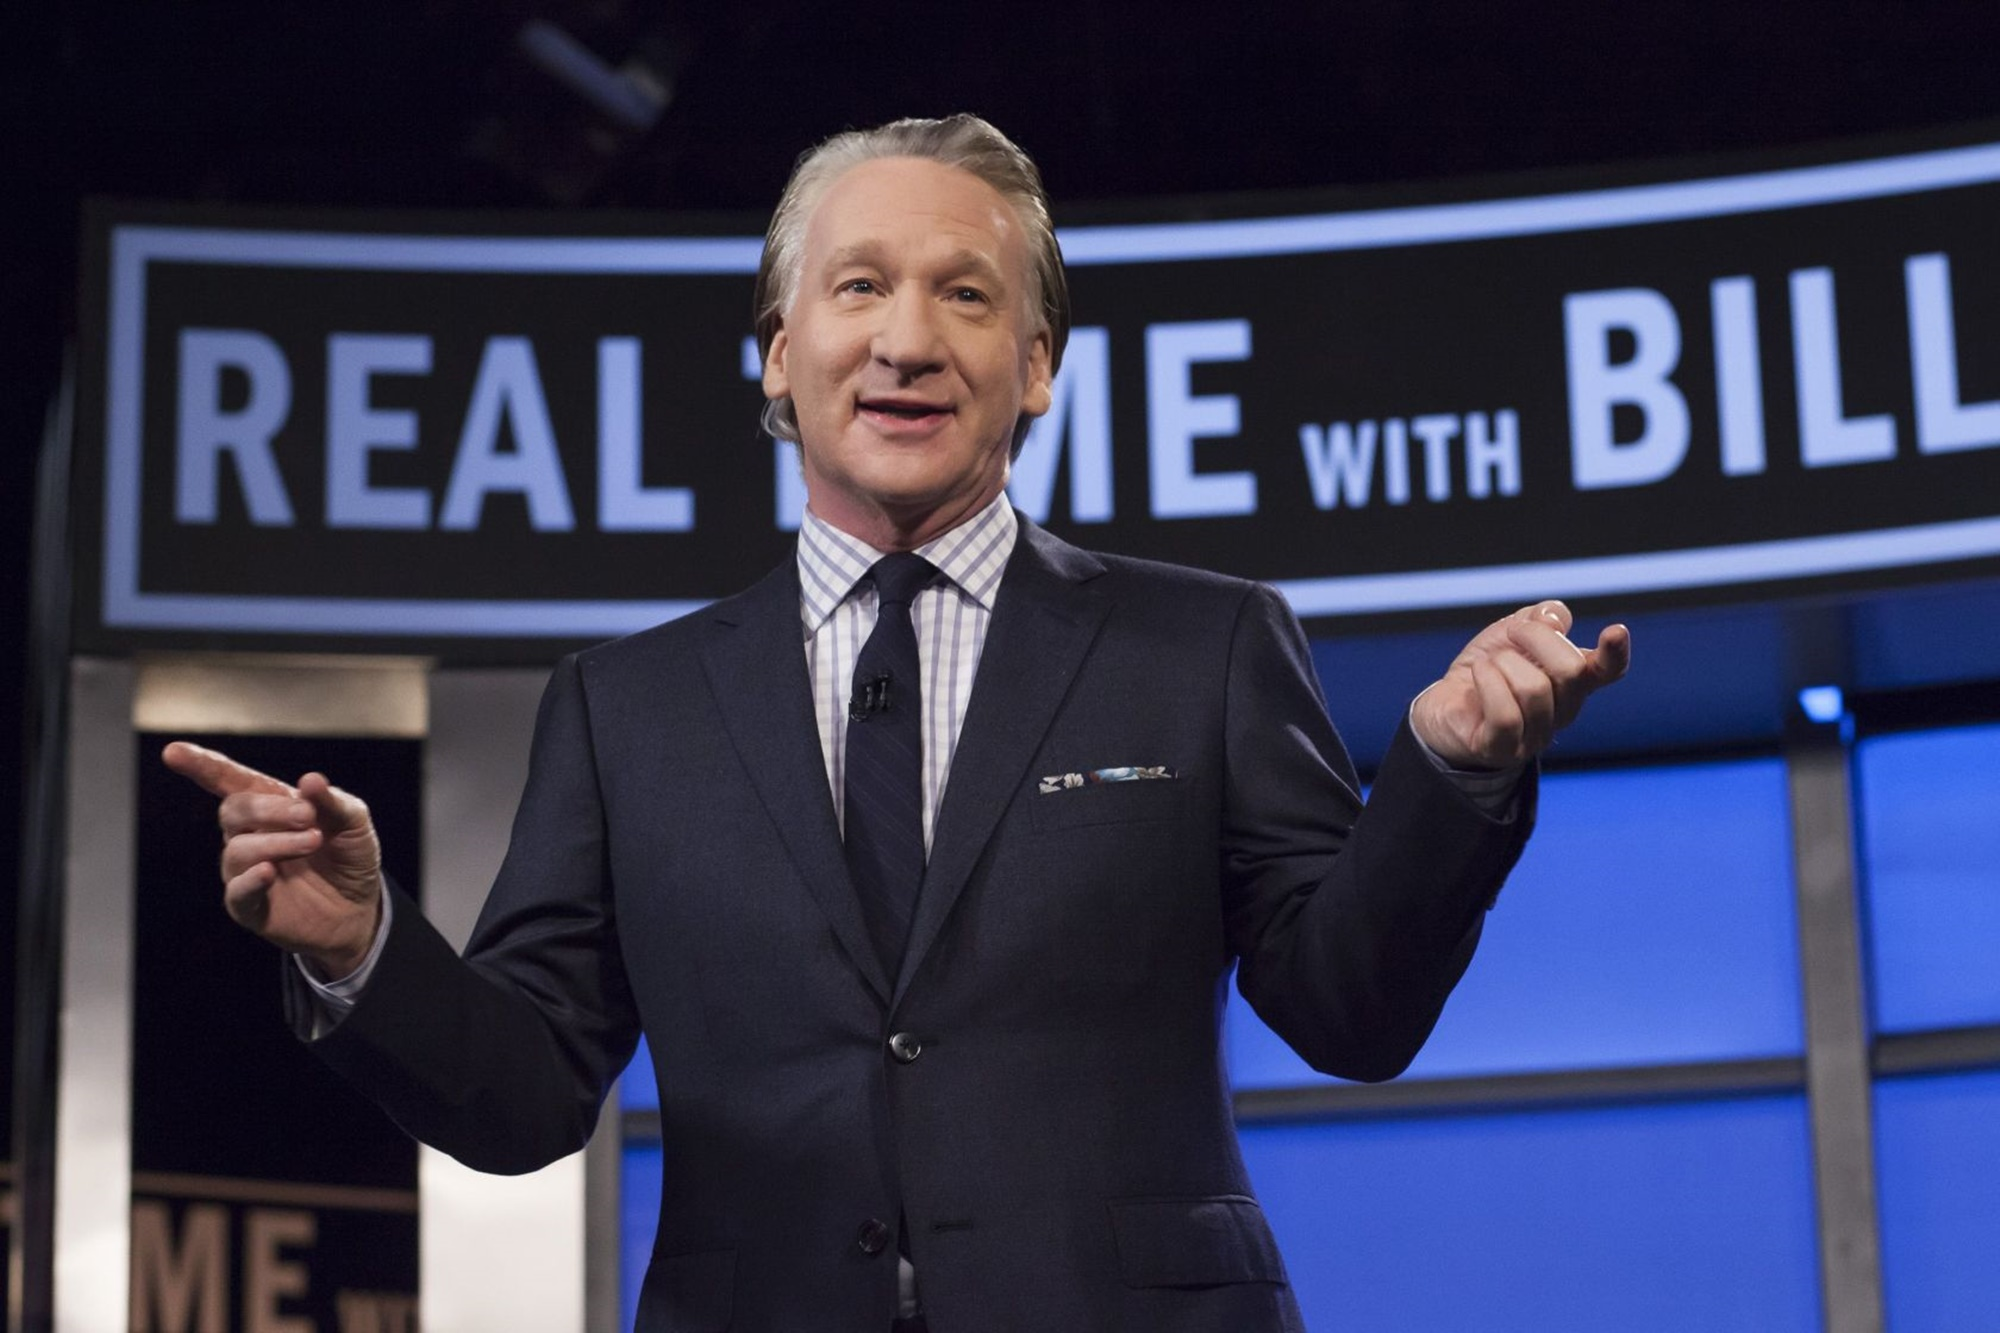 """bill-maher-defends-joe-biden-in-recent-sexual-misconduct-scandal-comedian-jokes-it-is-not-that-serious"""